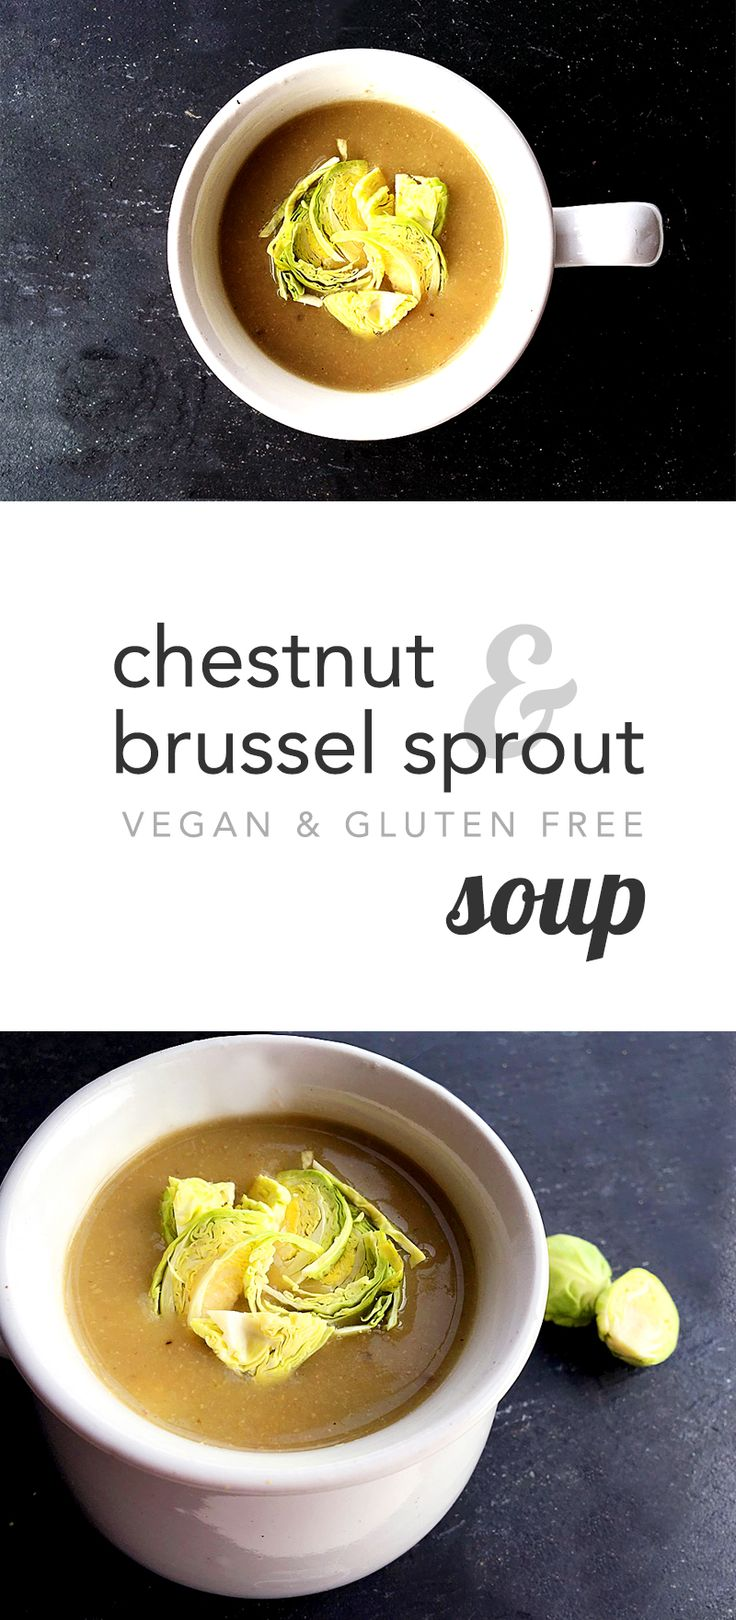 Chestnut & brussel sprout soup, vegan, gluten free (scheduled via http://www.tailwindapp.com?utm_source=pinterest&utm_medium=twpin&utm_content=post111958921&utm_campaign=scheduler_attribution)